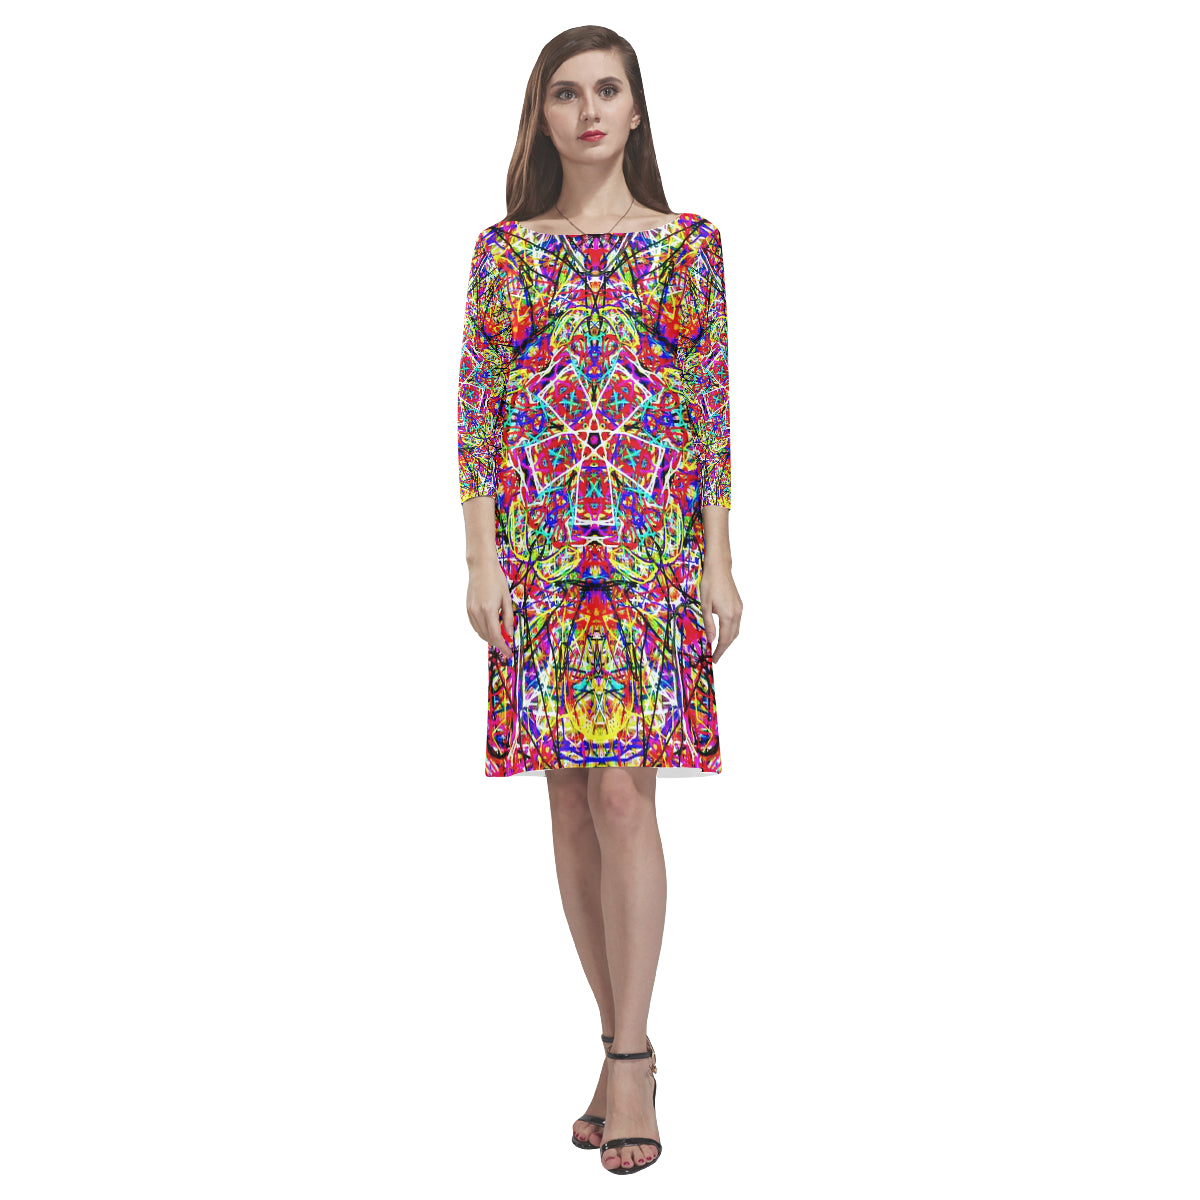 Thleudron Women's Wind Power Rhea Loose Round Neck Dress(Model D22) - Thleudron